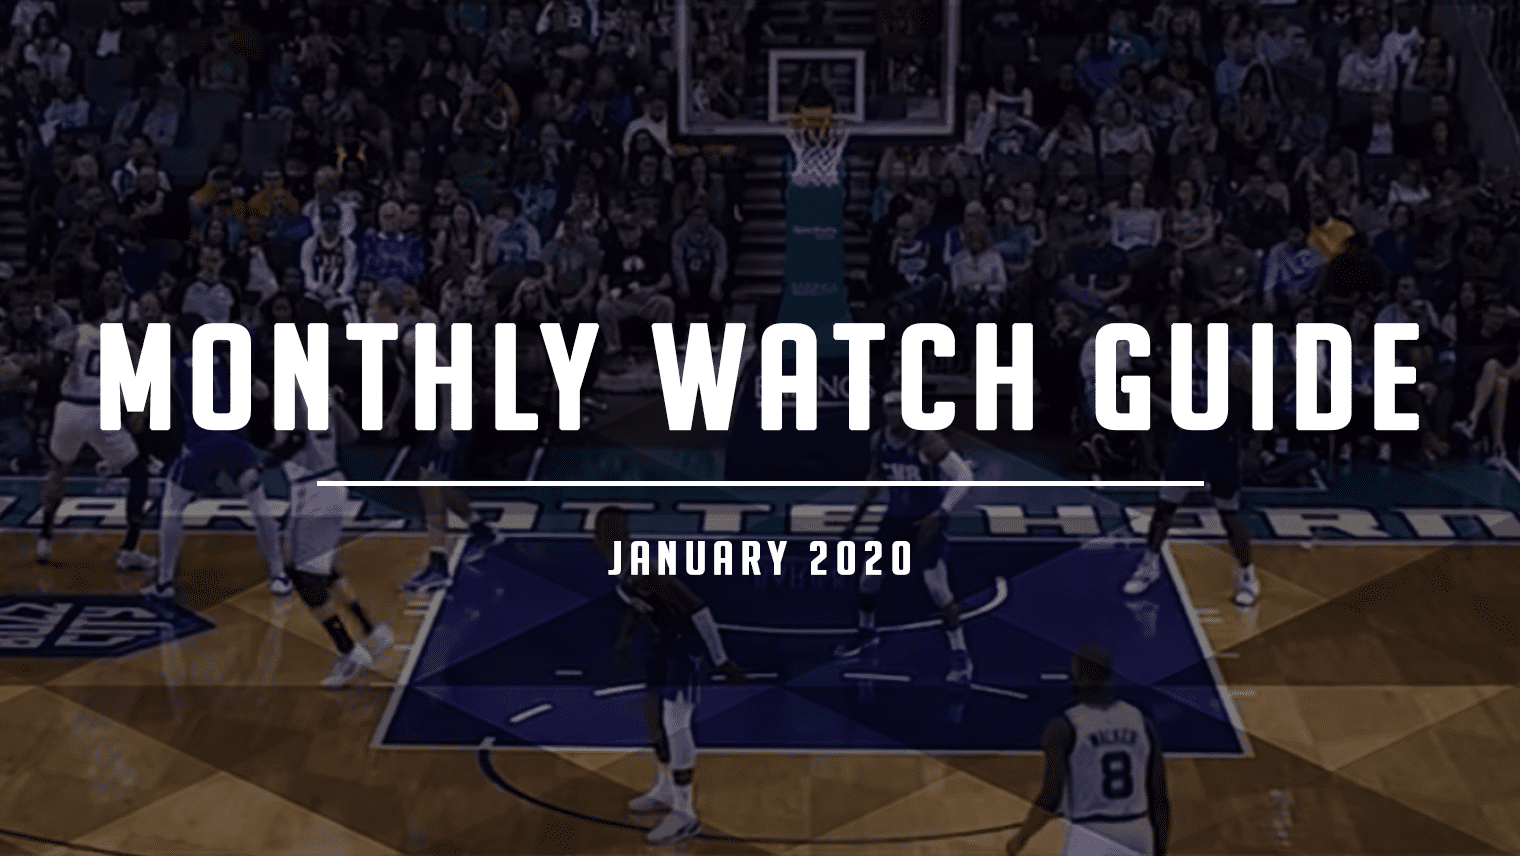 January 2020 Watch Guide